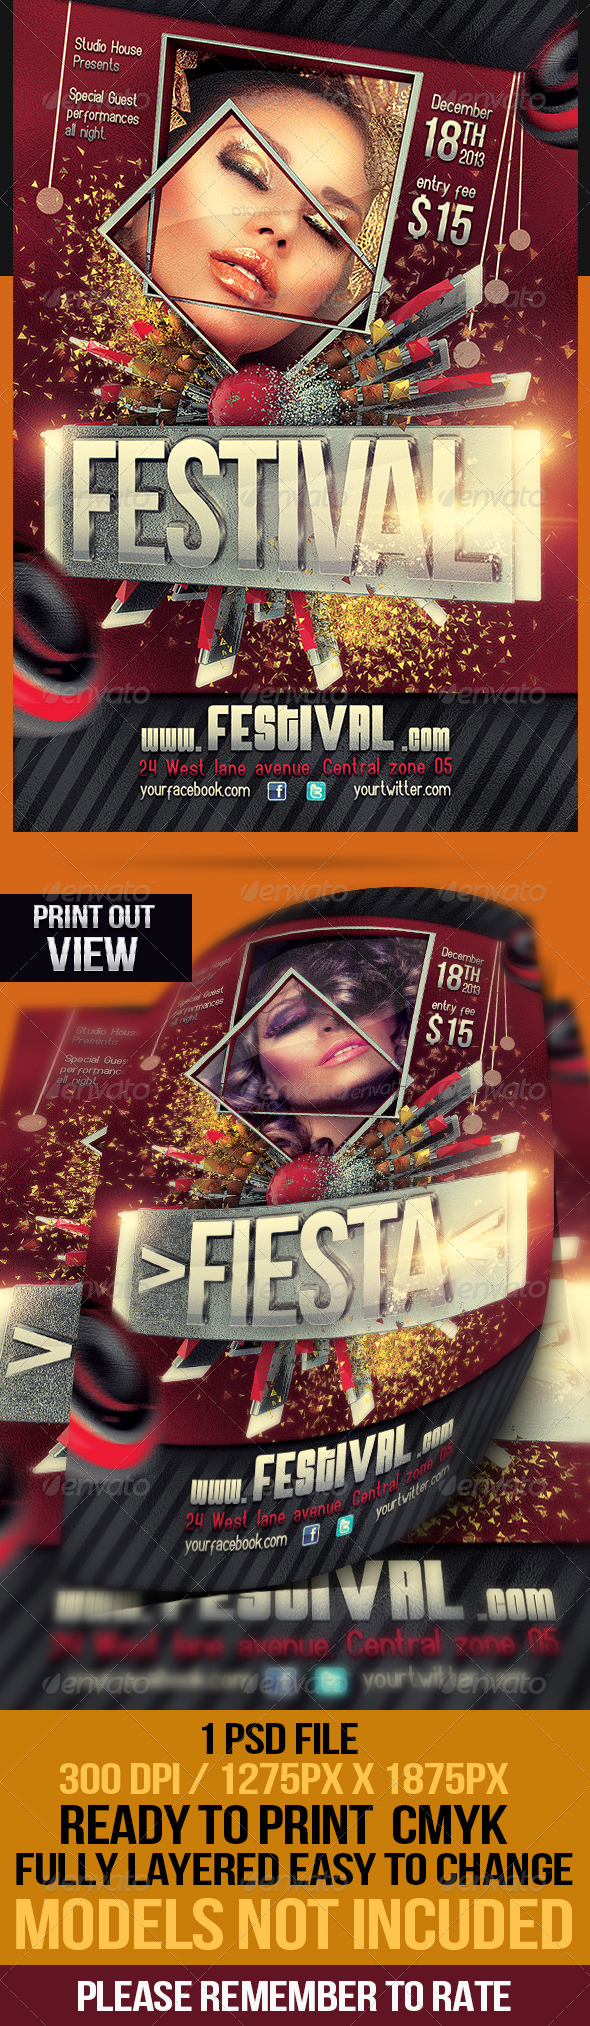 GraphicRiver Festival Fiesta Party Flyer 4658968